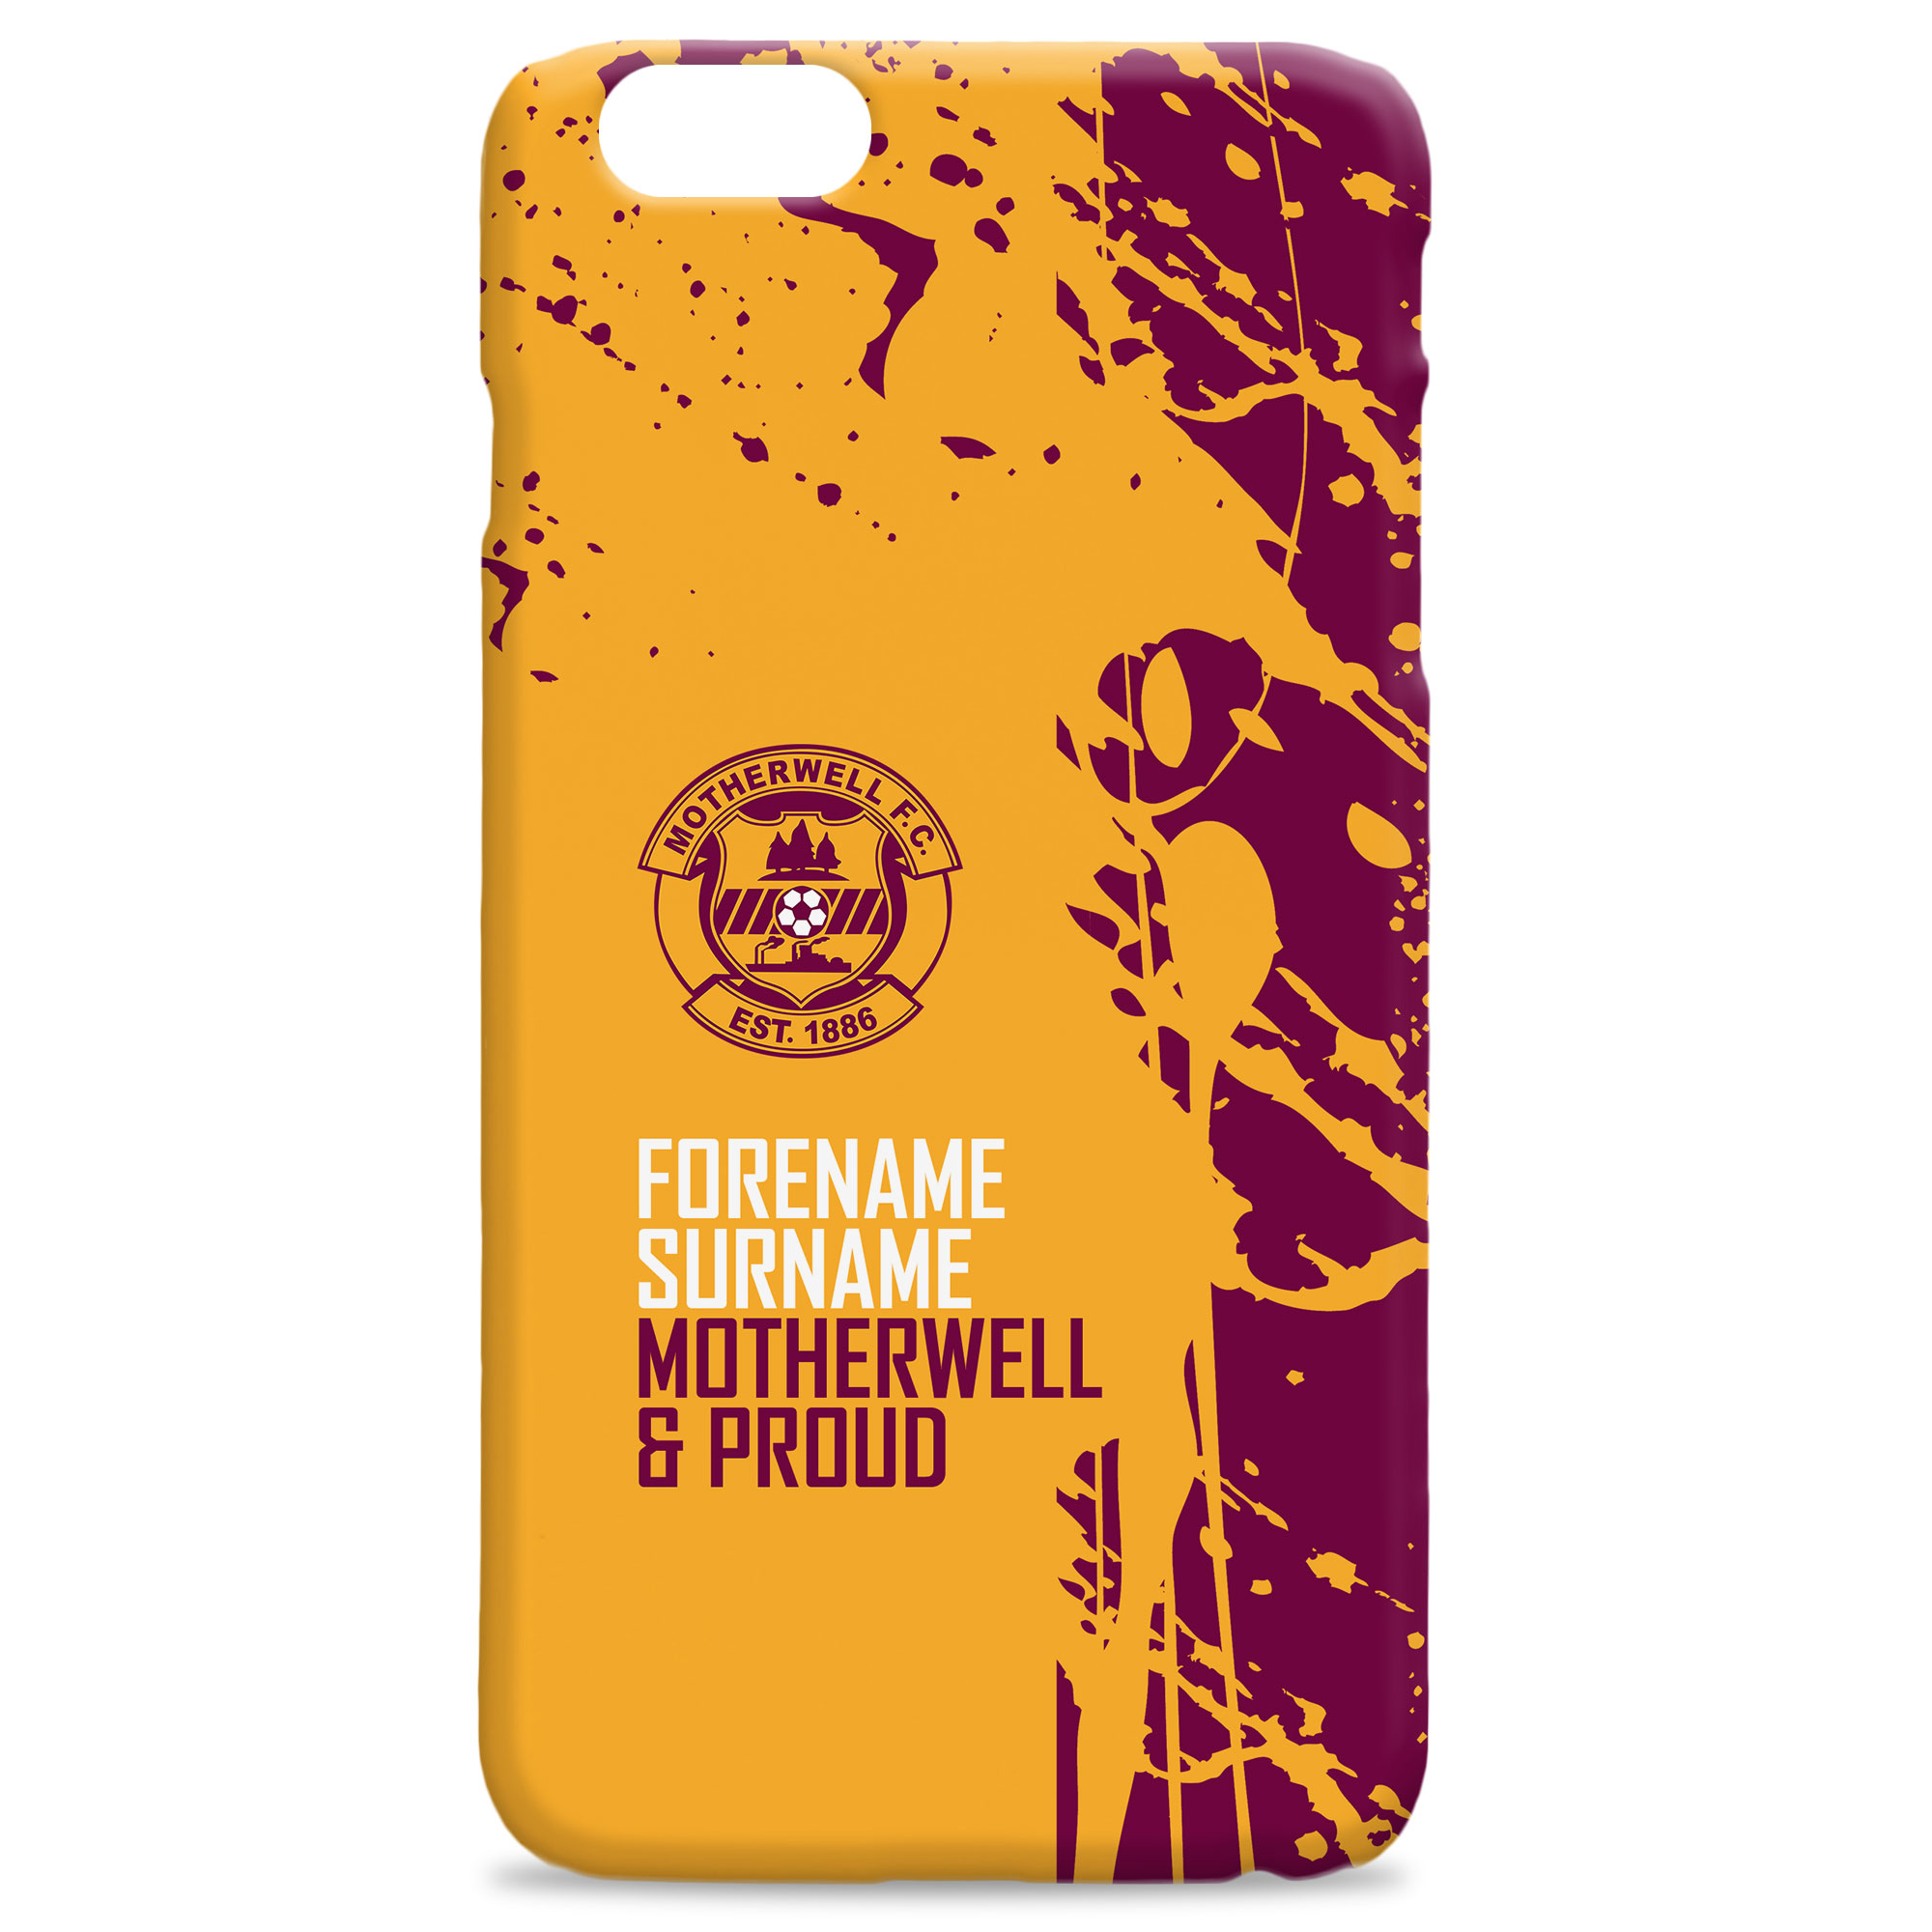 Motherwell FC Proud Hard Back Phone Case